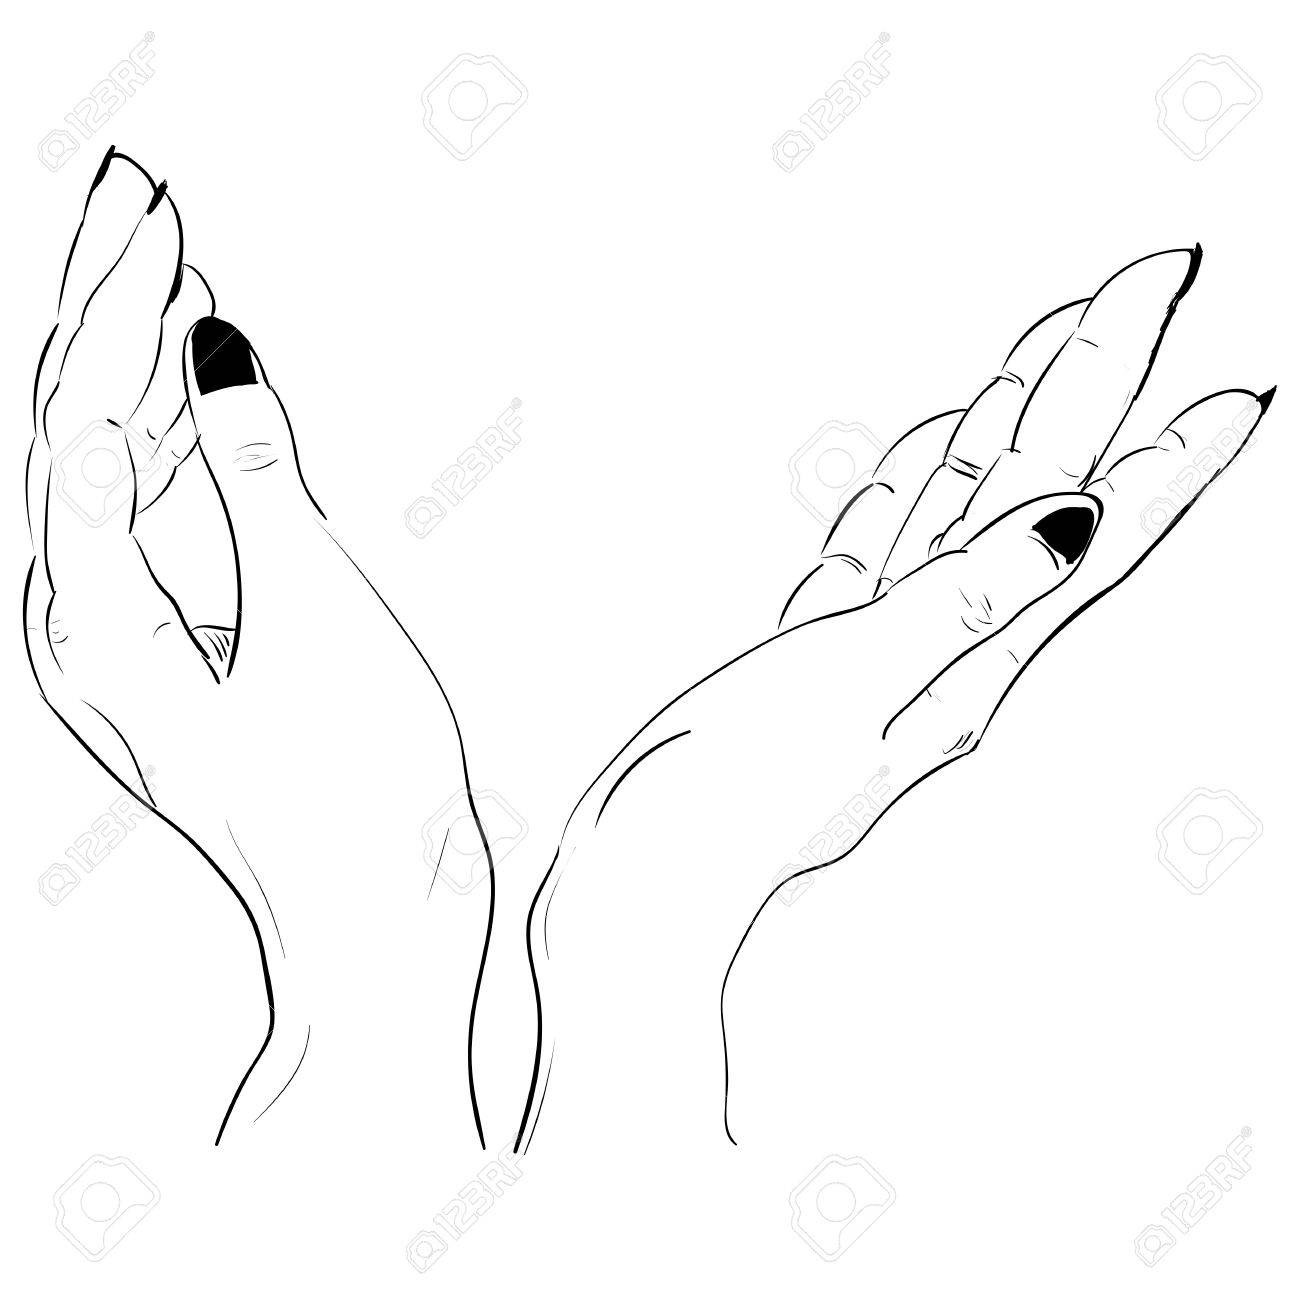 Drawing Of Two Hands Shaking